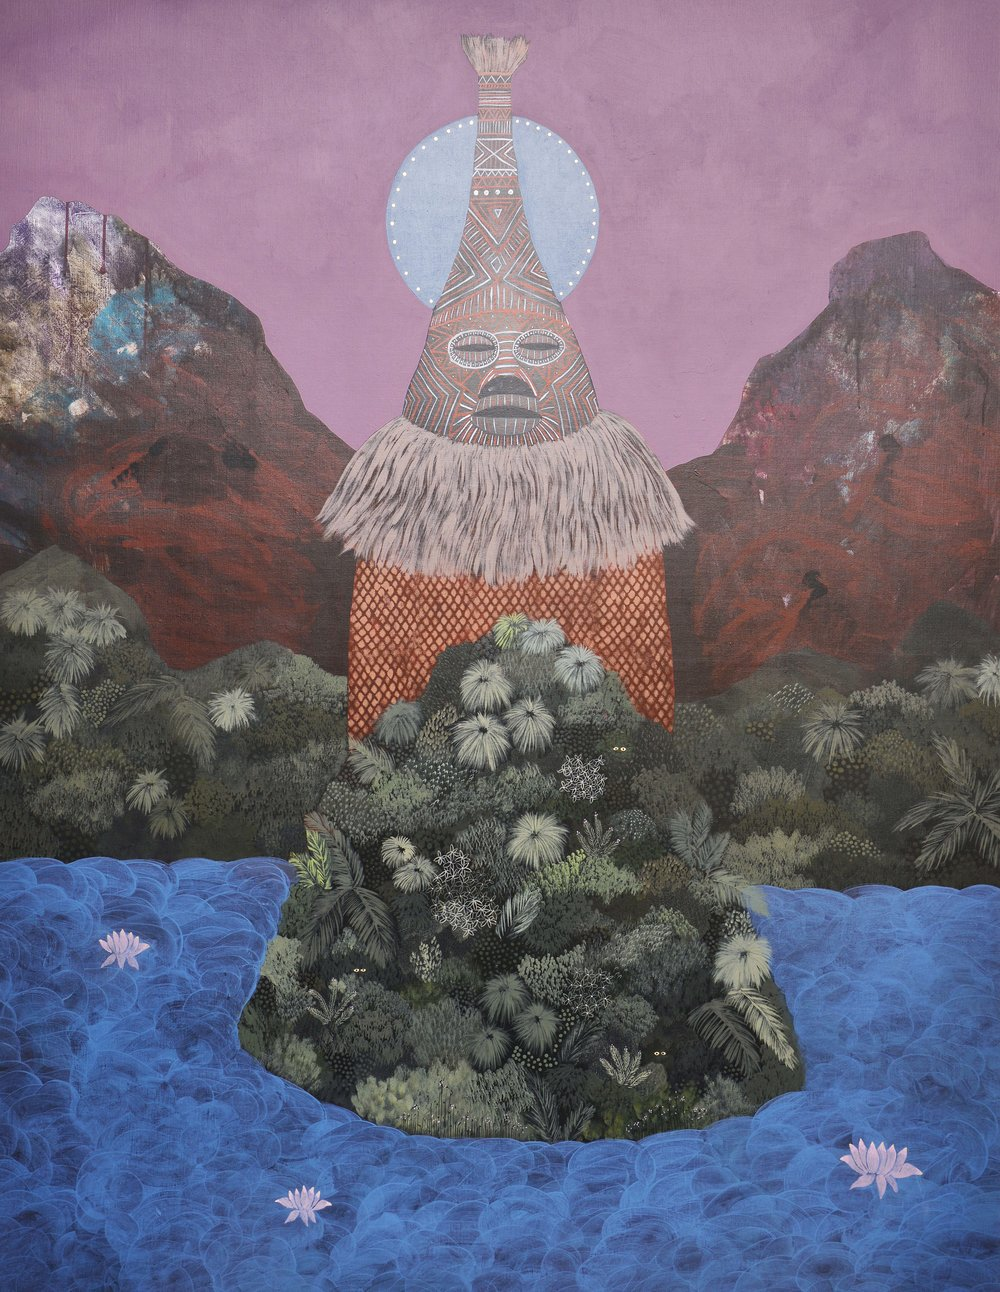 Marc Standing,  The Awakened One , 2016, acrylic on canvas, 120 x 155 cm